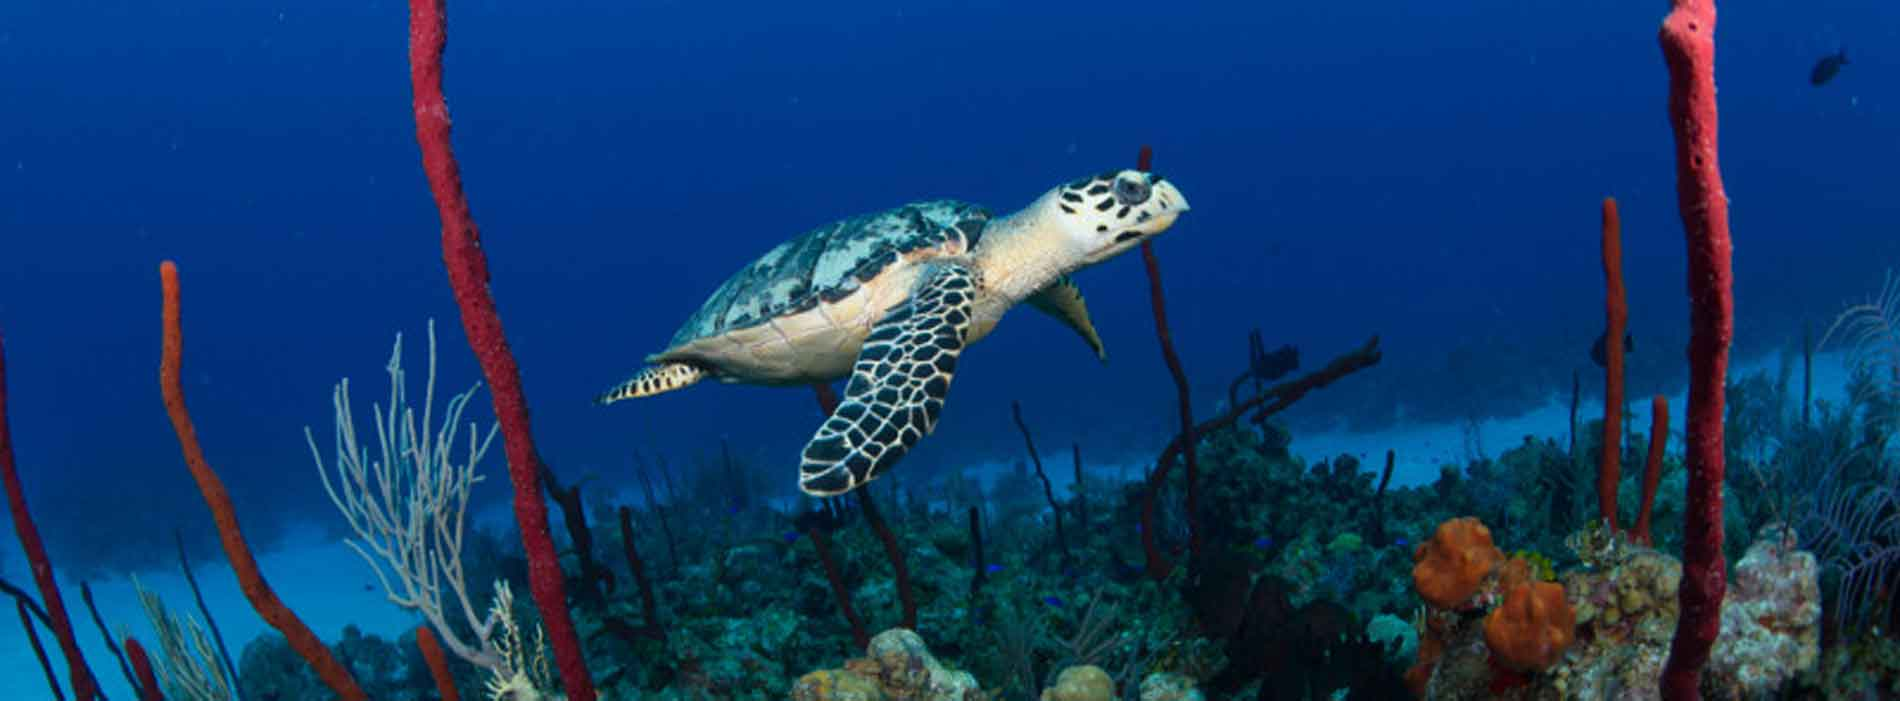 Sea turtle swimming in coral reef